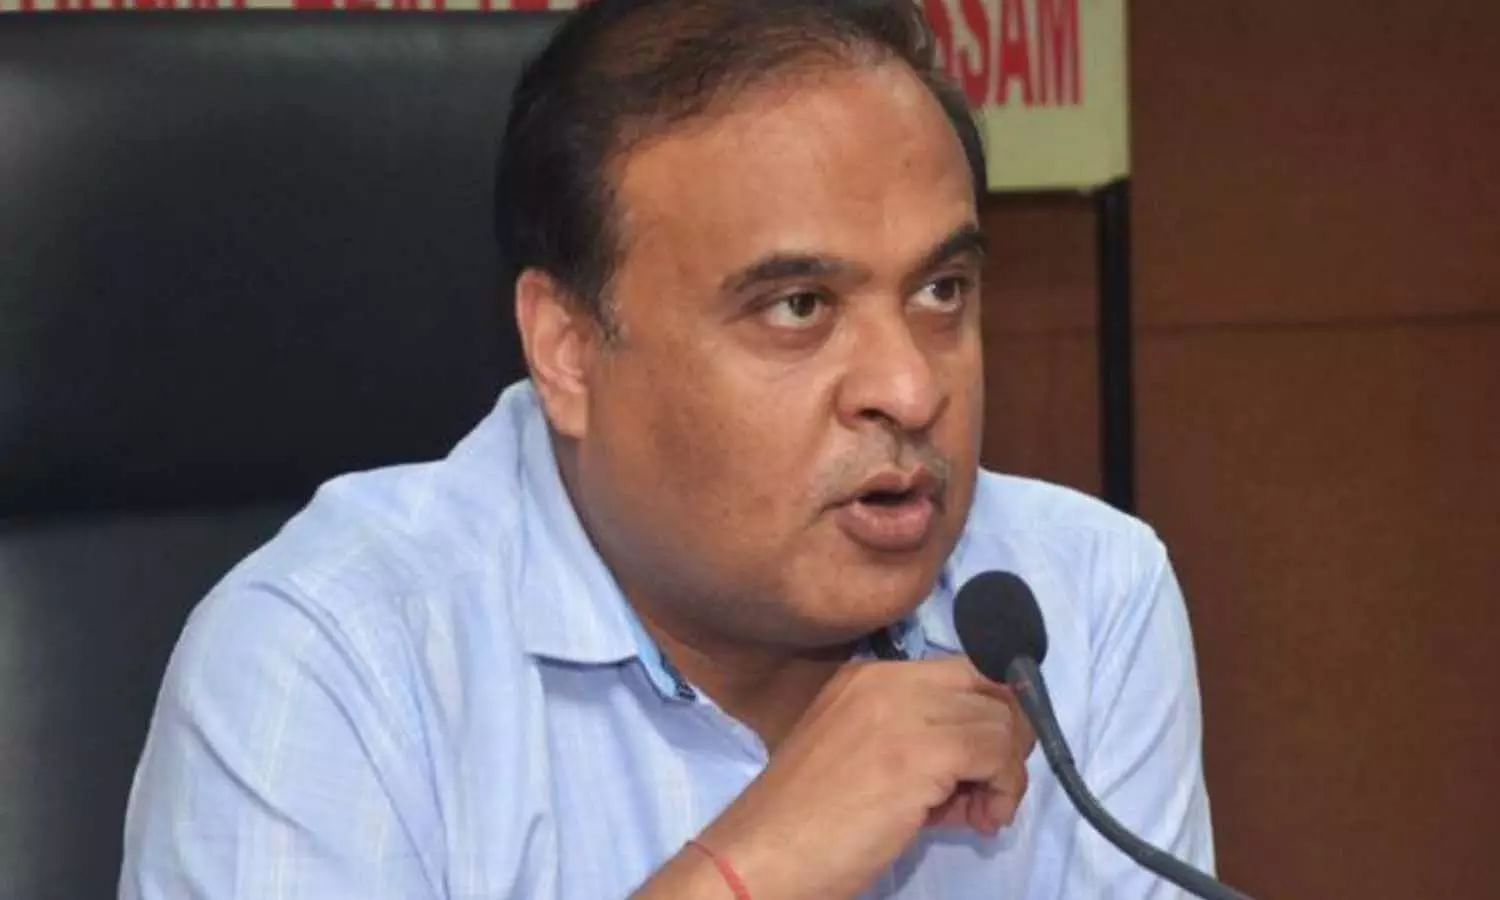 Lockdown restrictions in Assam to continue till August 15: Himanta Biswa Sarma